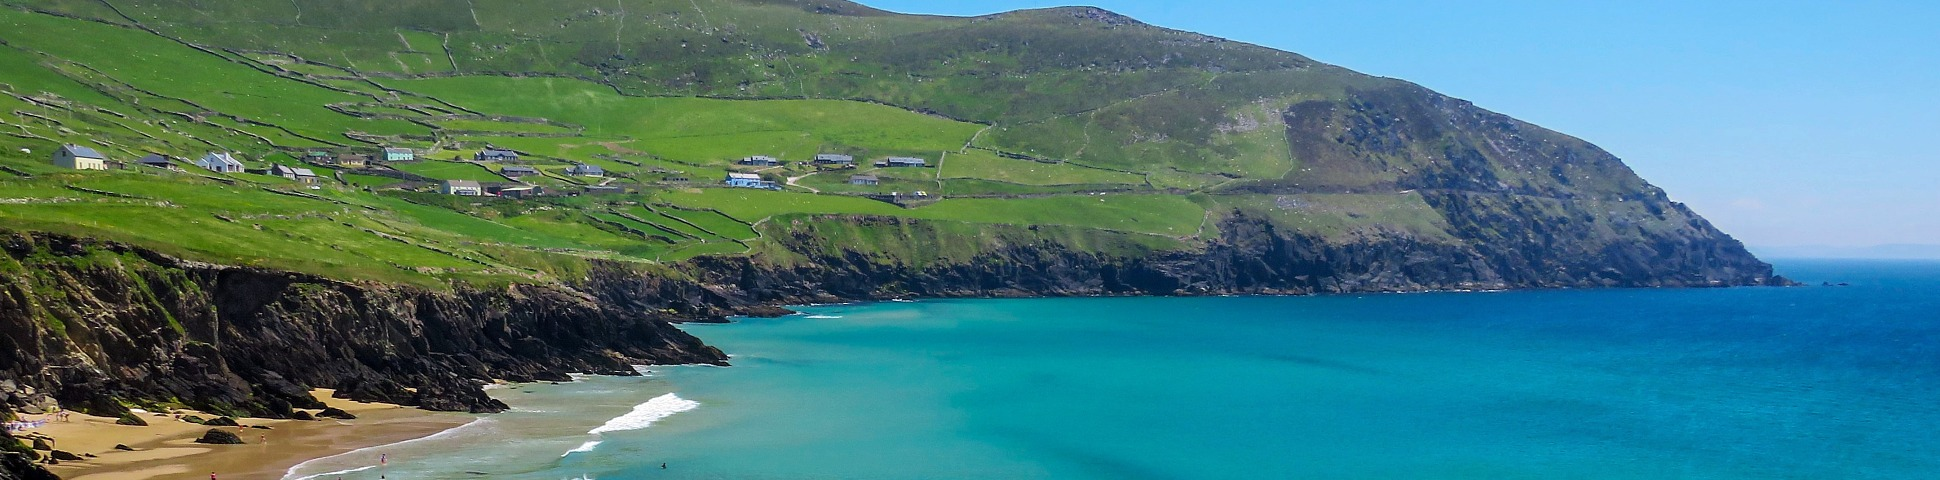 Green hills and blue ocean on the coastline of Kerry in Ireland